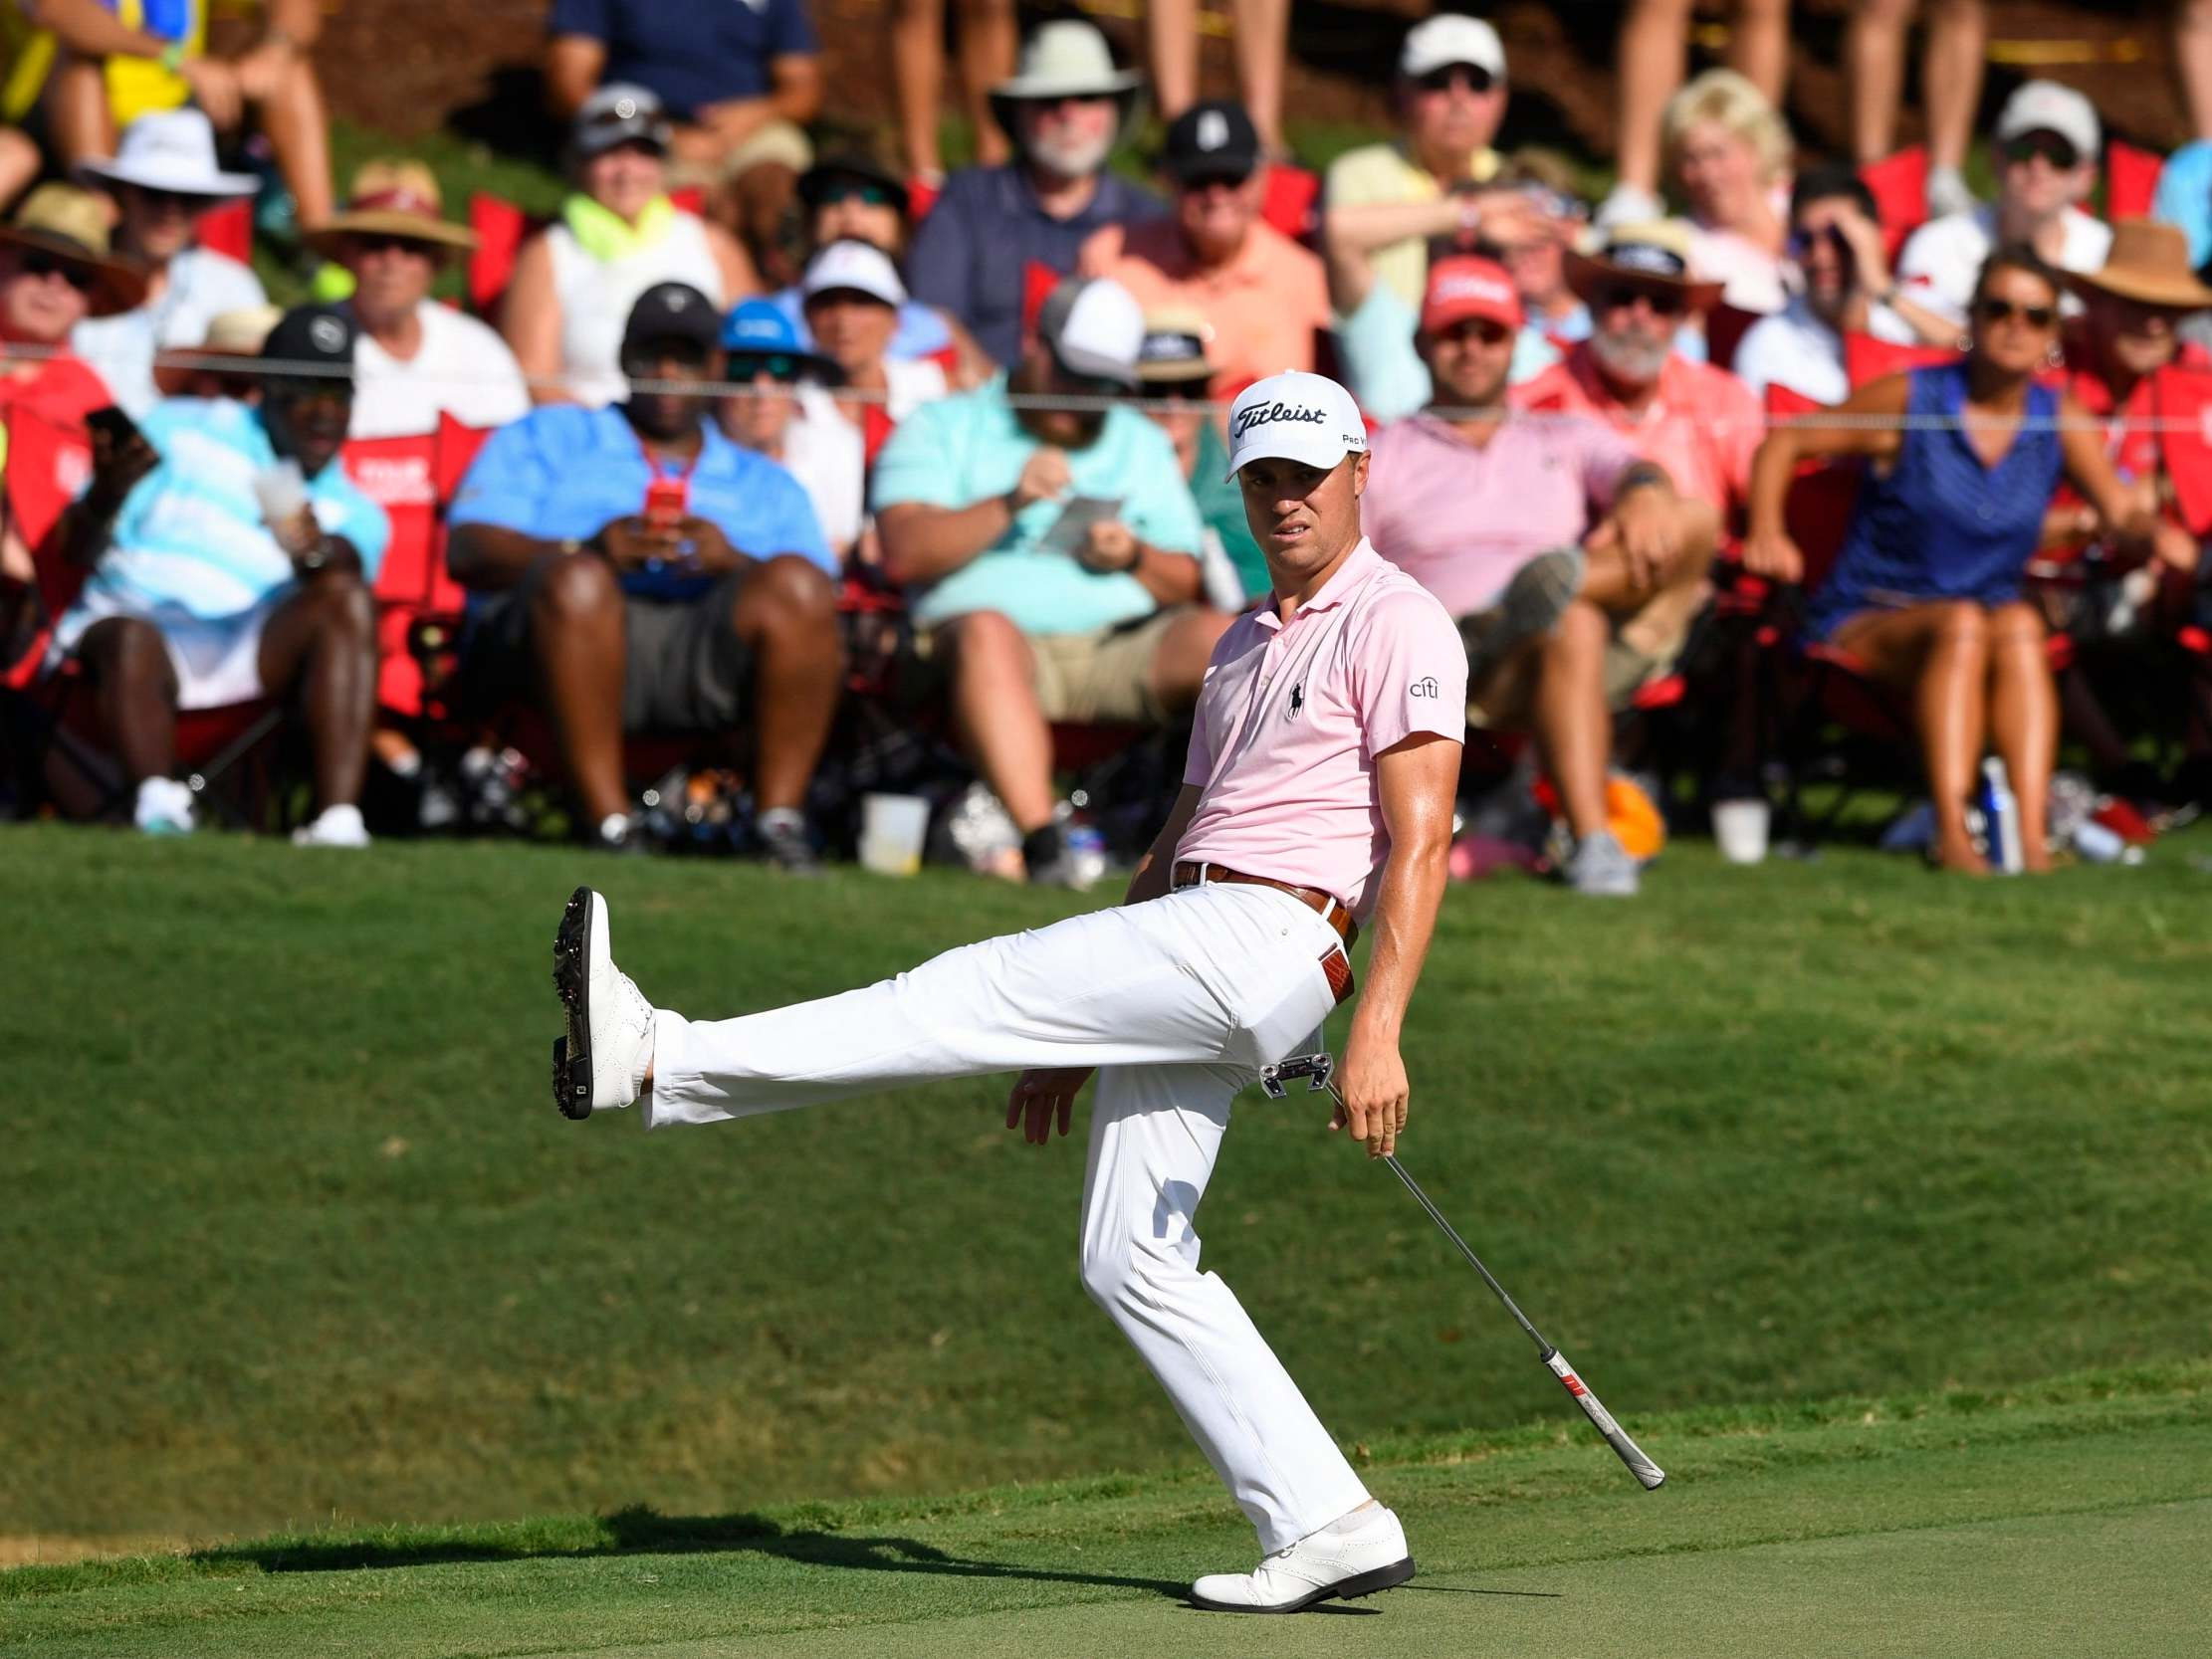 FedEx Cup: Justin Thomas sees controversial two-stroke lead wiped out by Xander Schauffele and Brooks Koepka